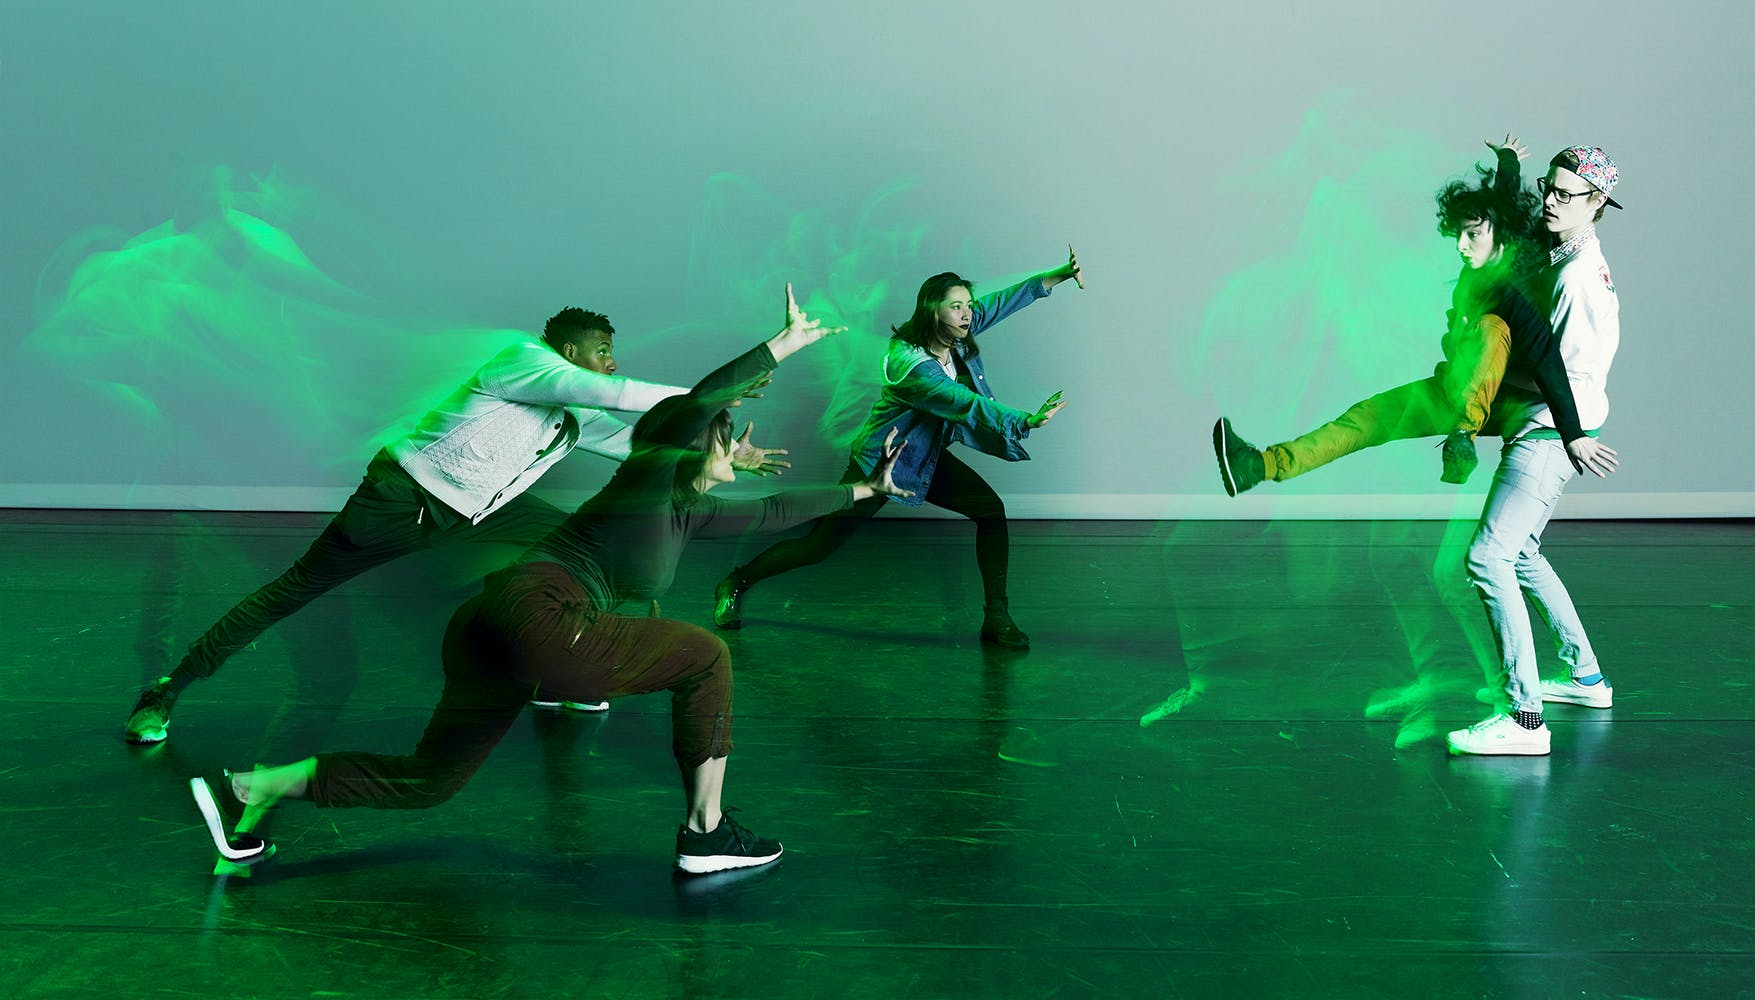 STRONGmovement dance group dancing illuminated by green lighting.